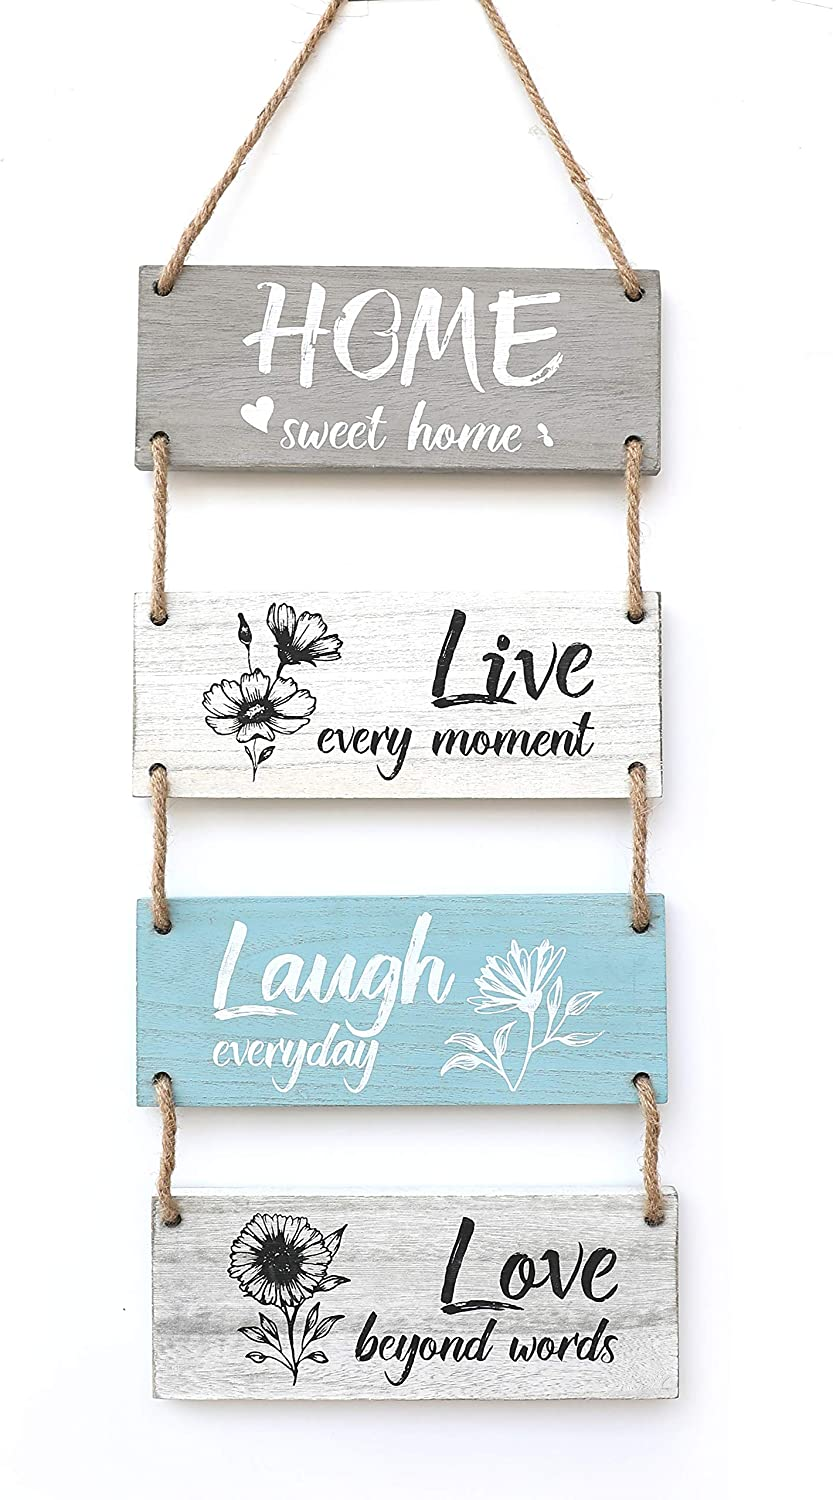 Rustic Wall Hanging Plaque Sign - Home Live Laugh Love, Farmhouse Wall Decor, Motivational Gifts Positive Wall Sign with Inspirational Saying Quotes Wall Decor for Home, Kitchen and entryway